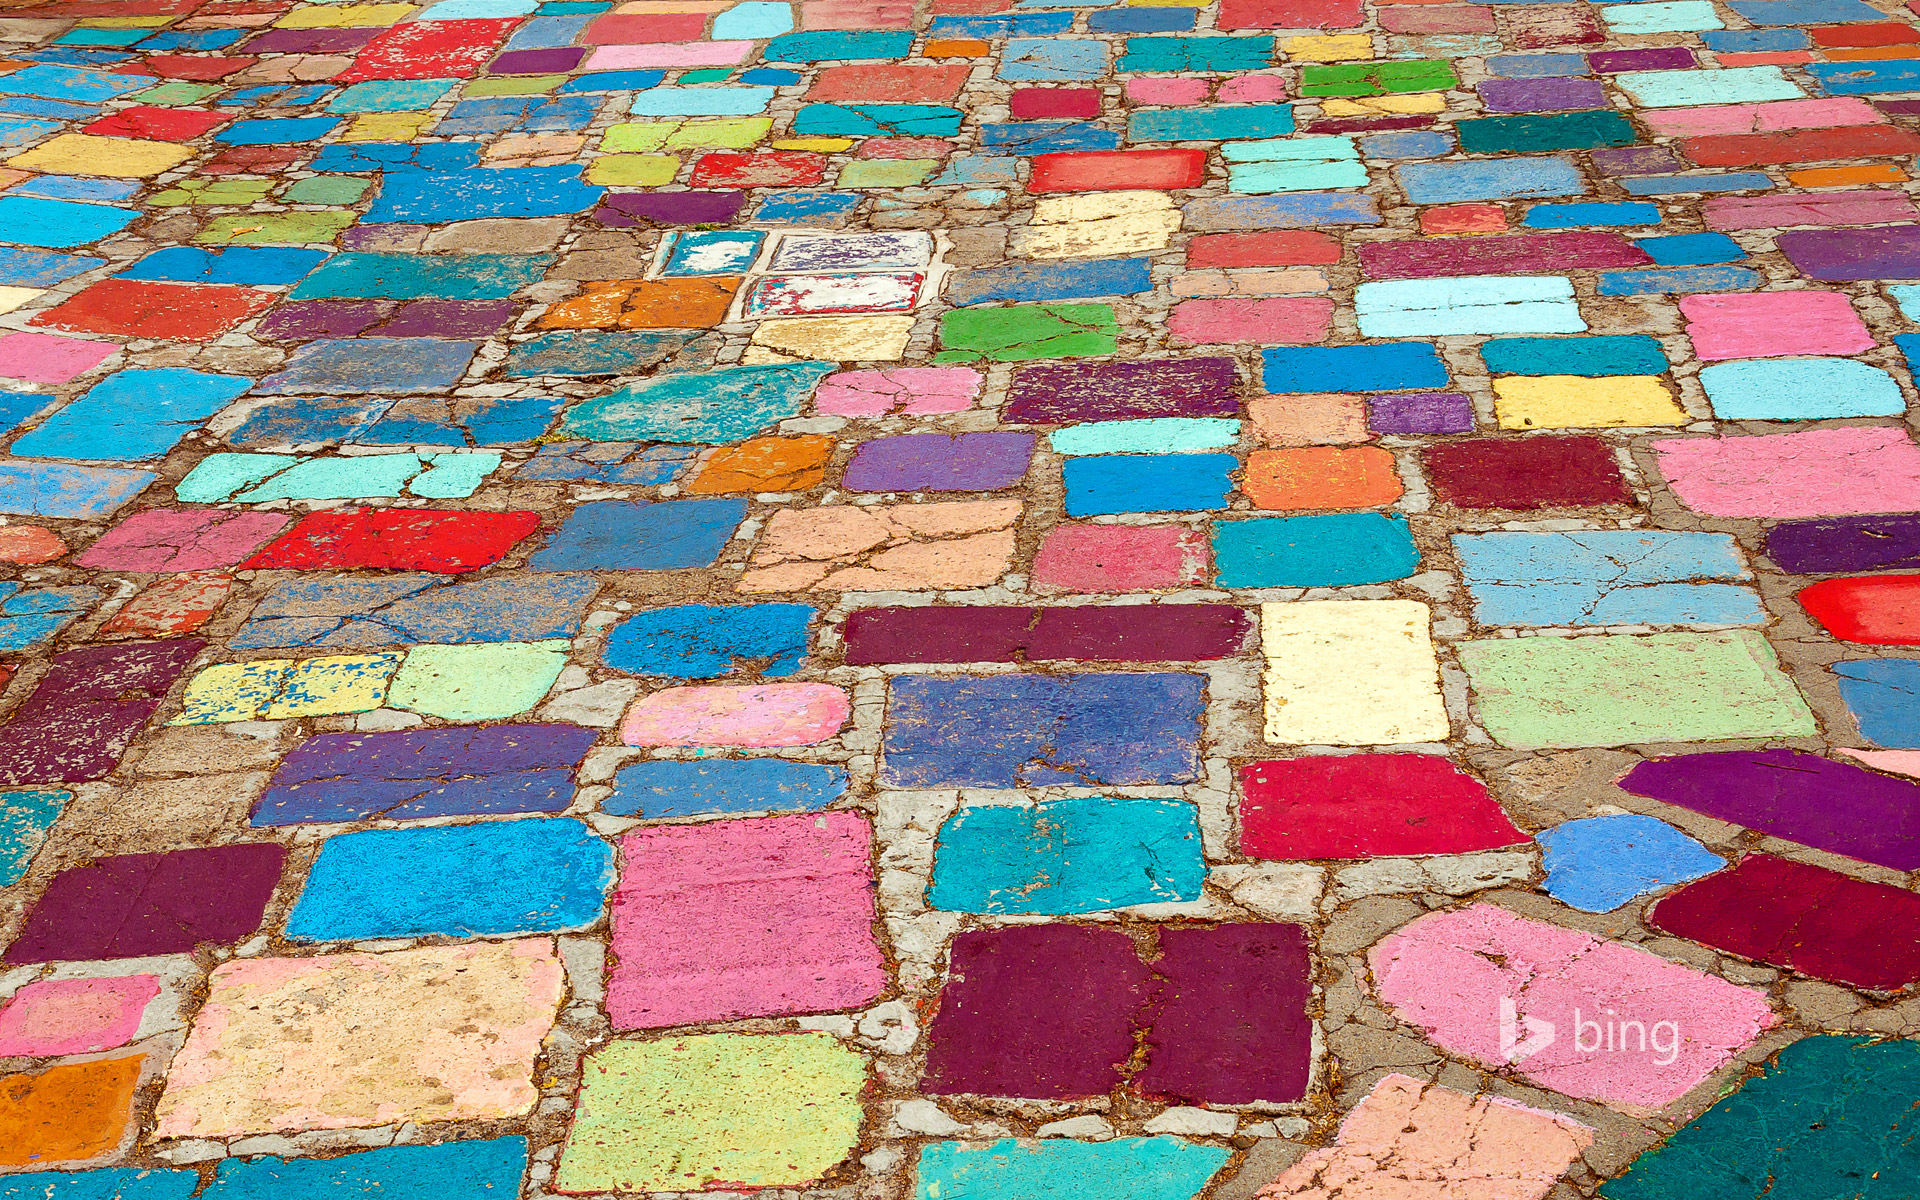 Multicolored cobblestones in the Spanish Village Art Center in Balboa Park, San Diego, California